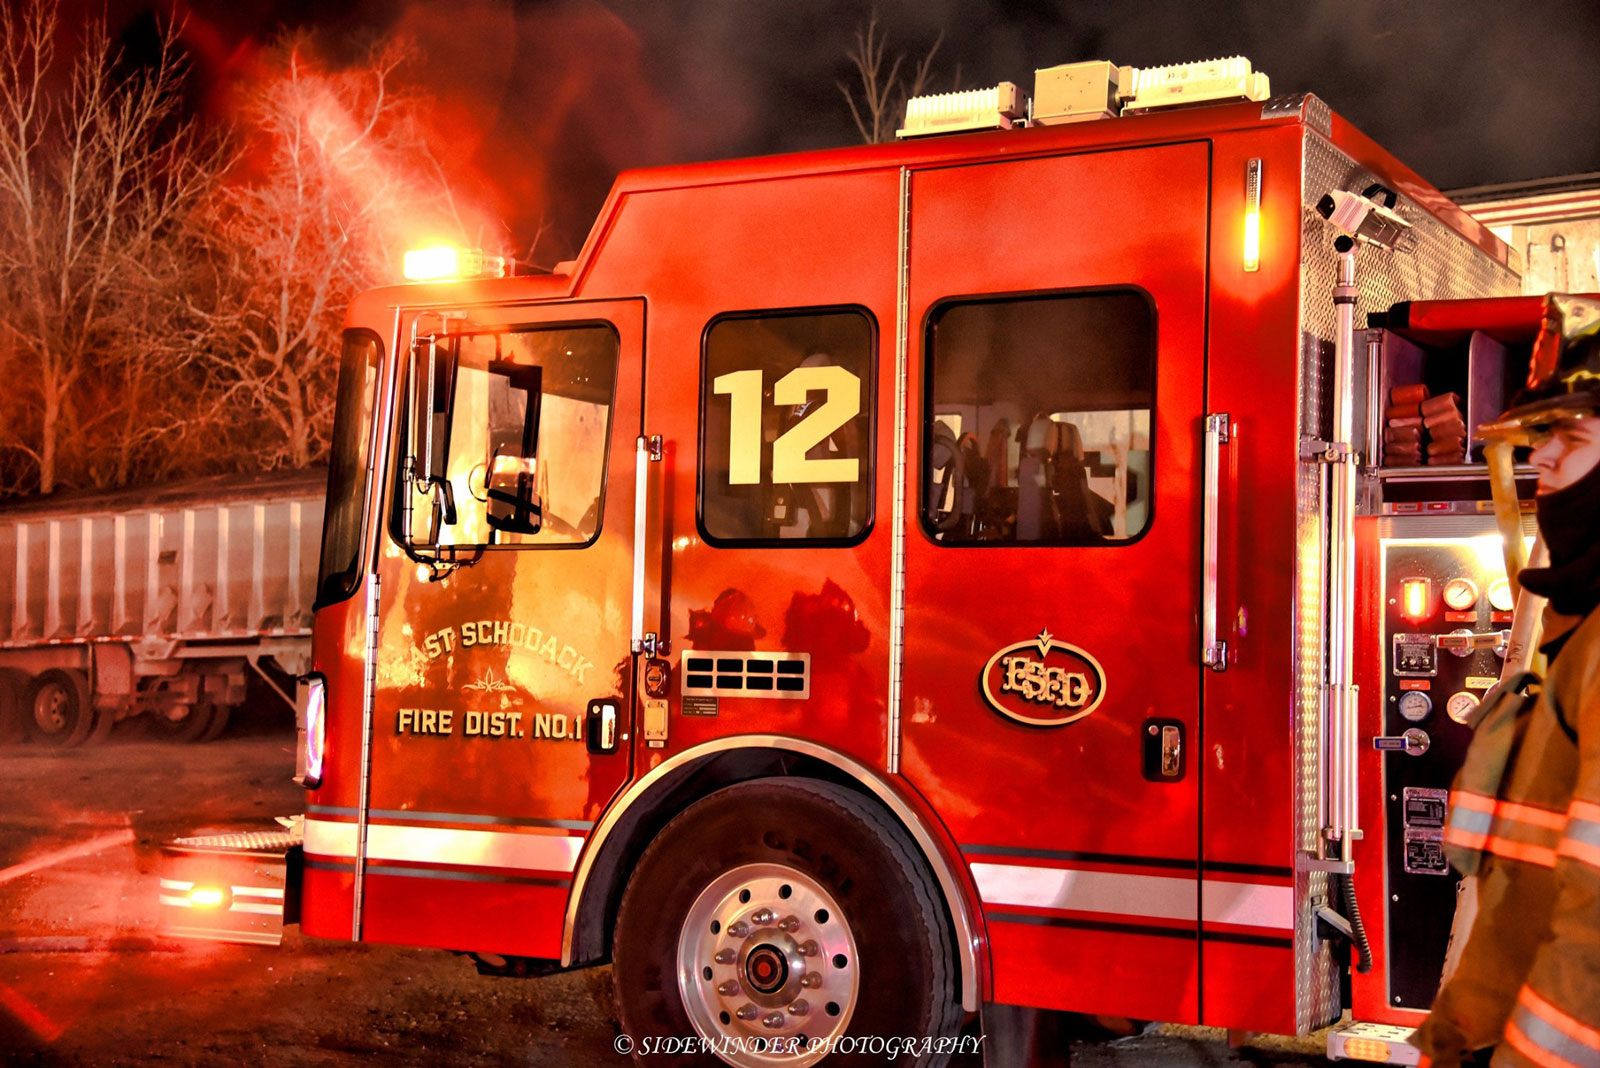 Fire apparatus with light from the flames reflecting on it